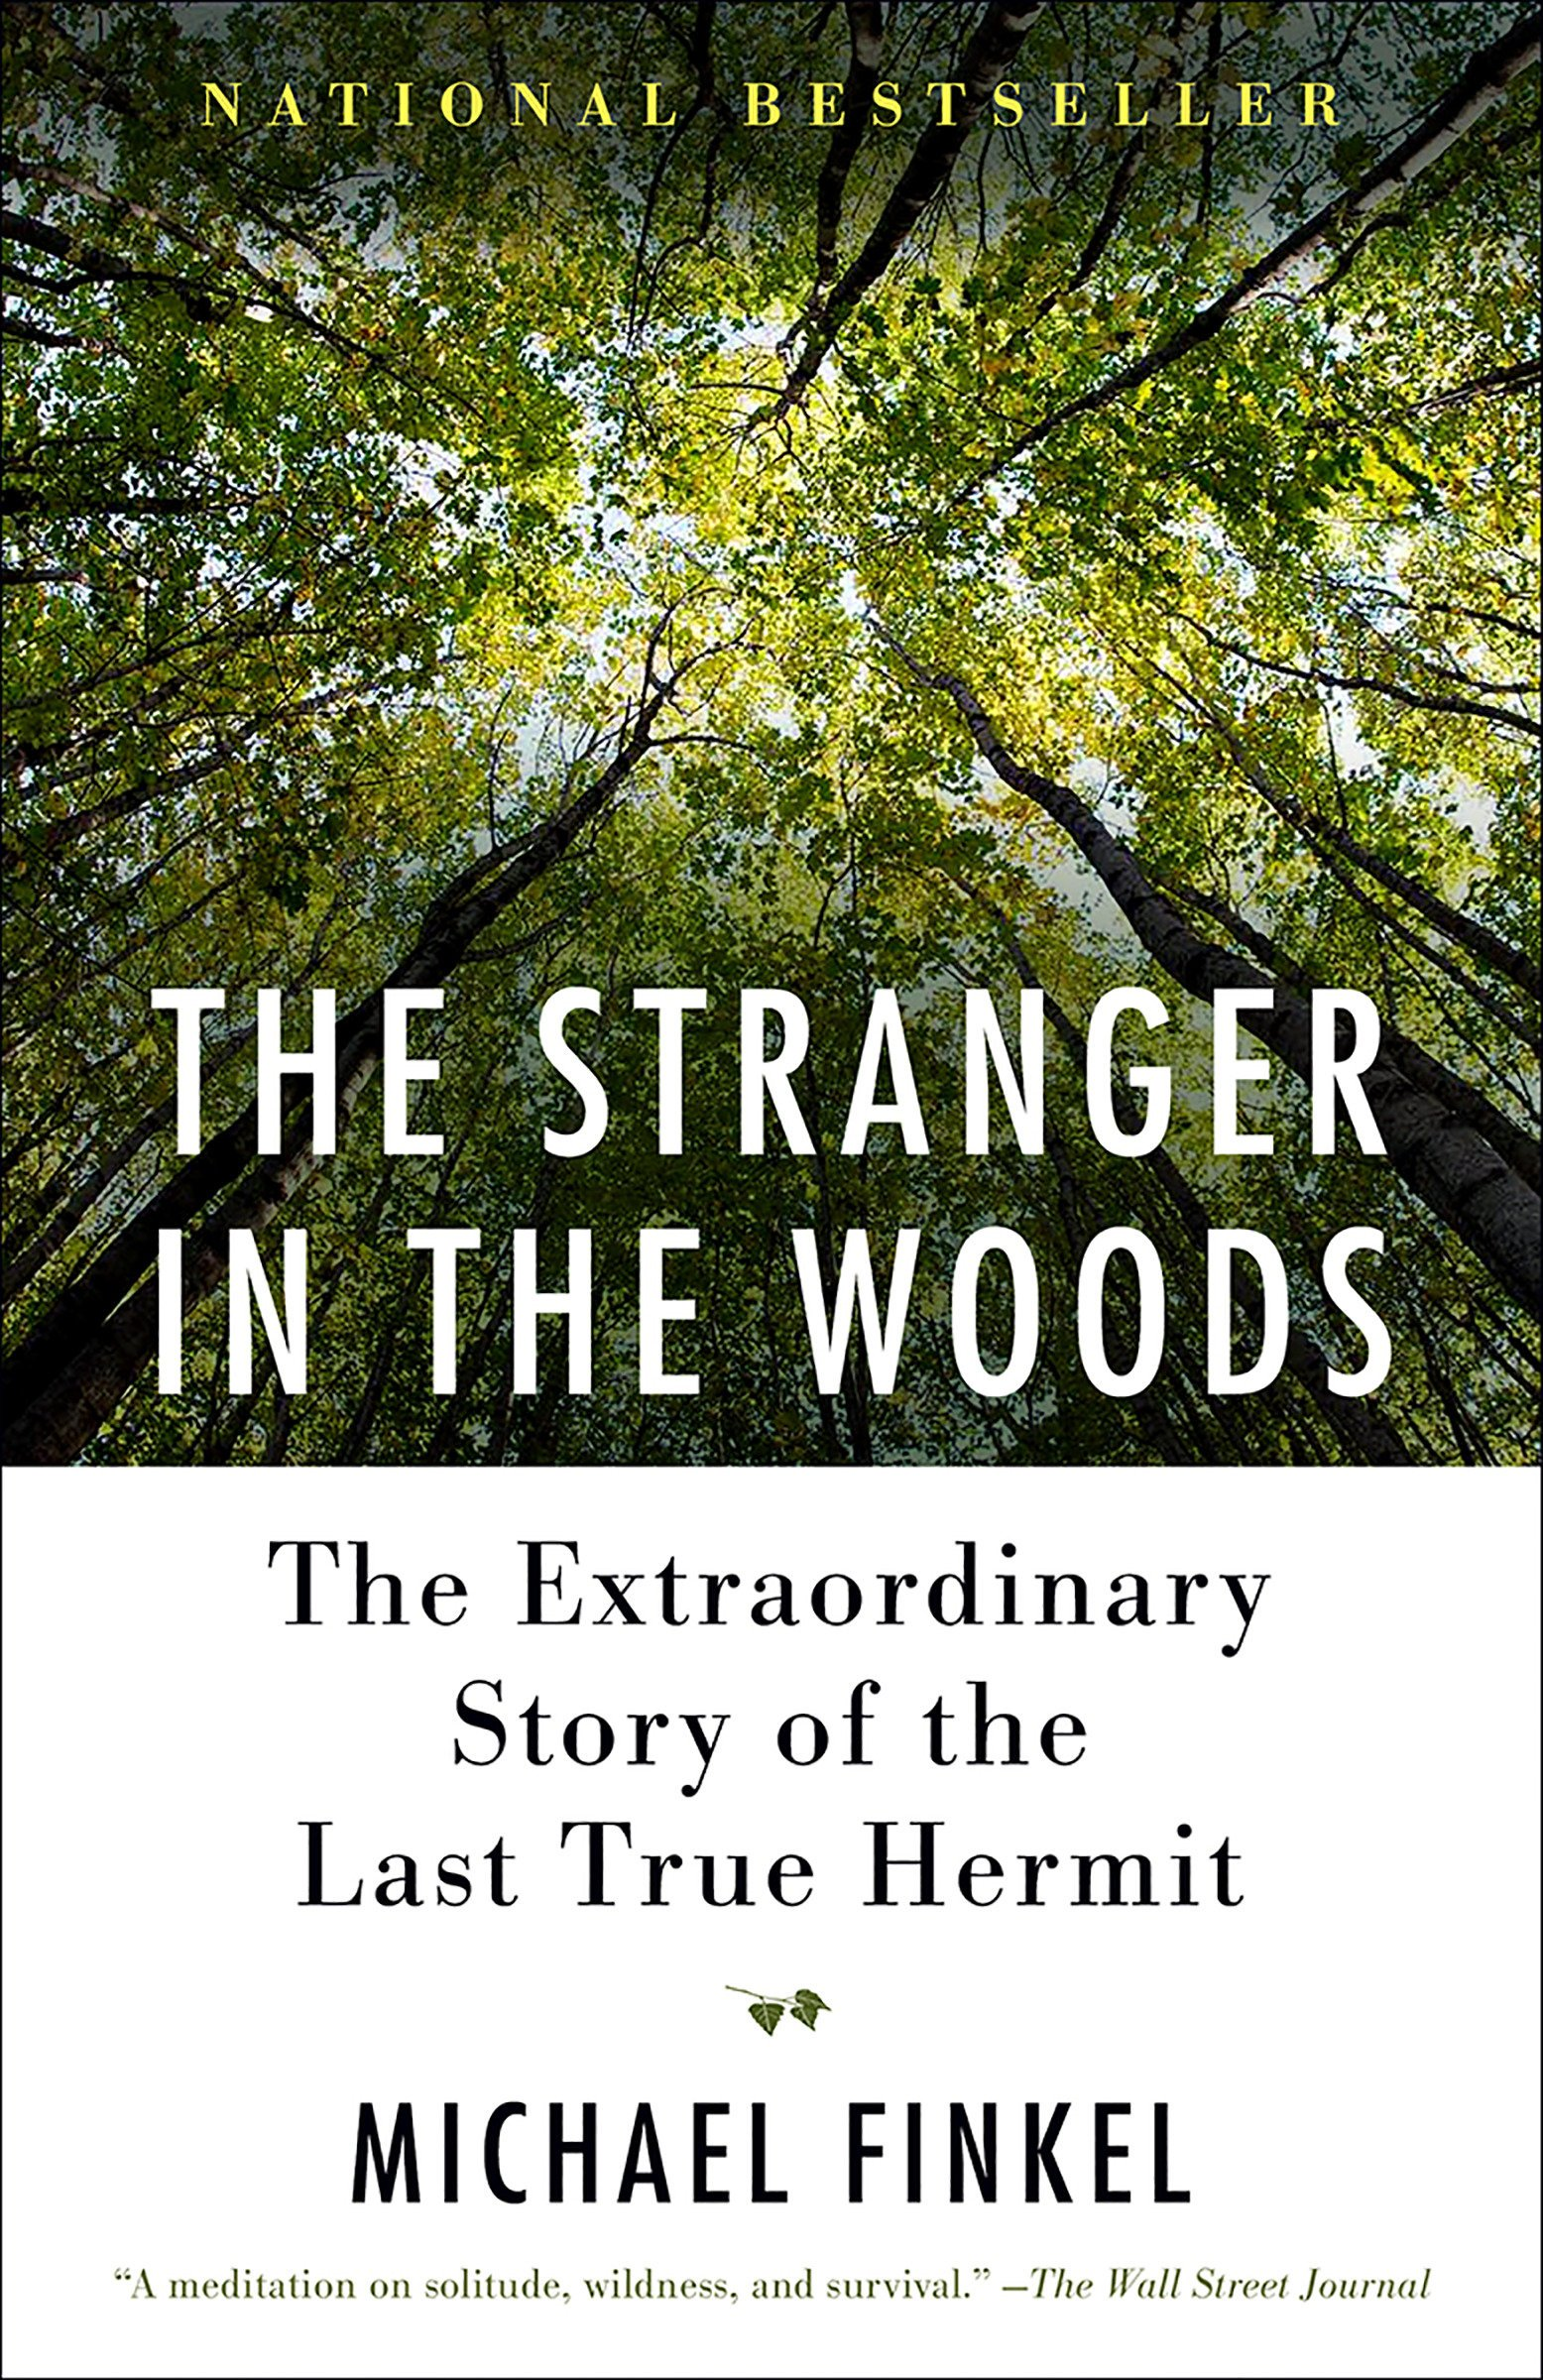 Inspiring Memoirs & Biographies - The Stranger in the Woods by Michael Finkel